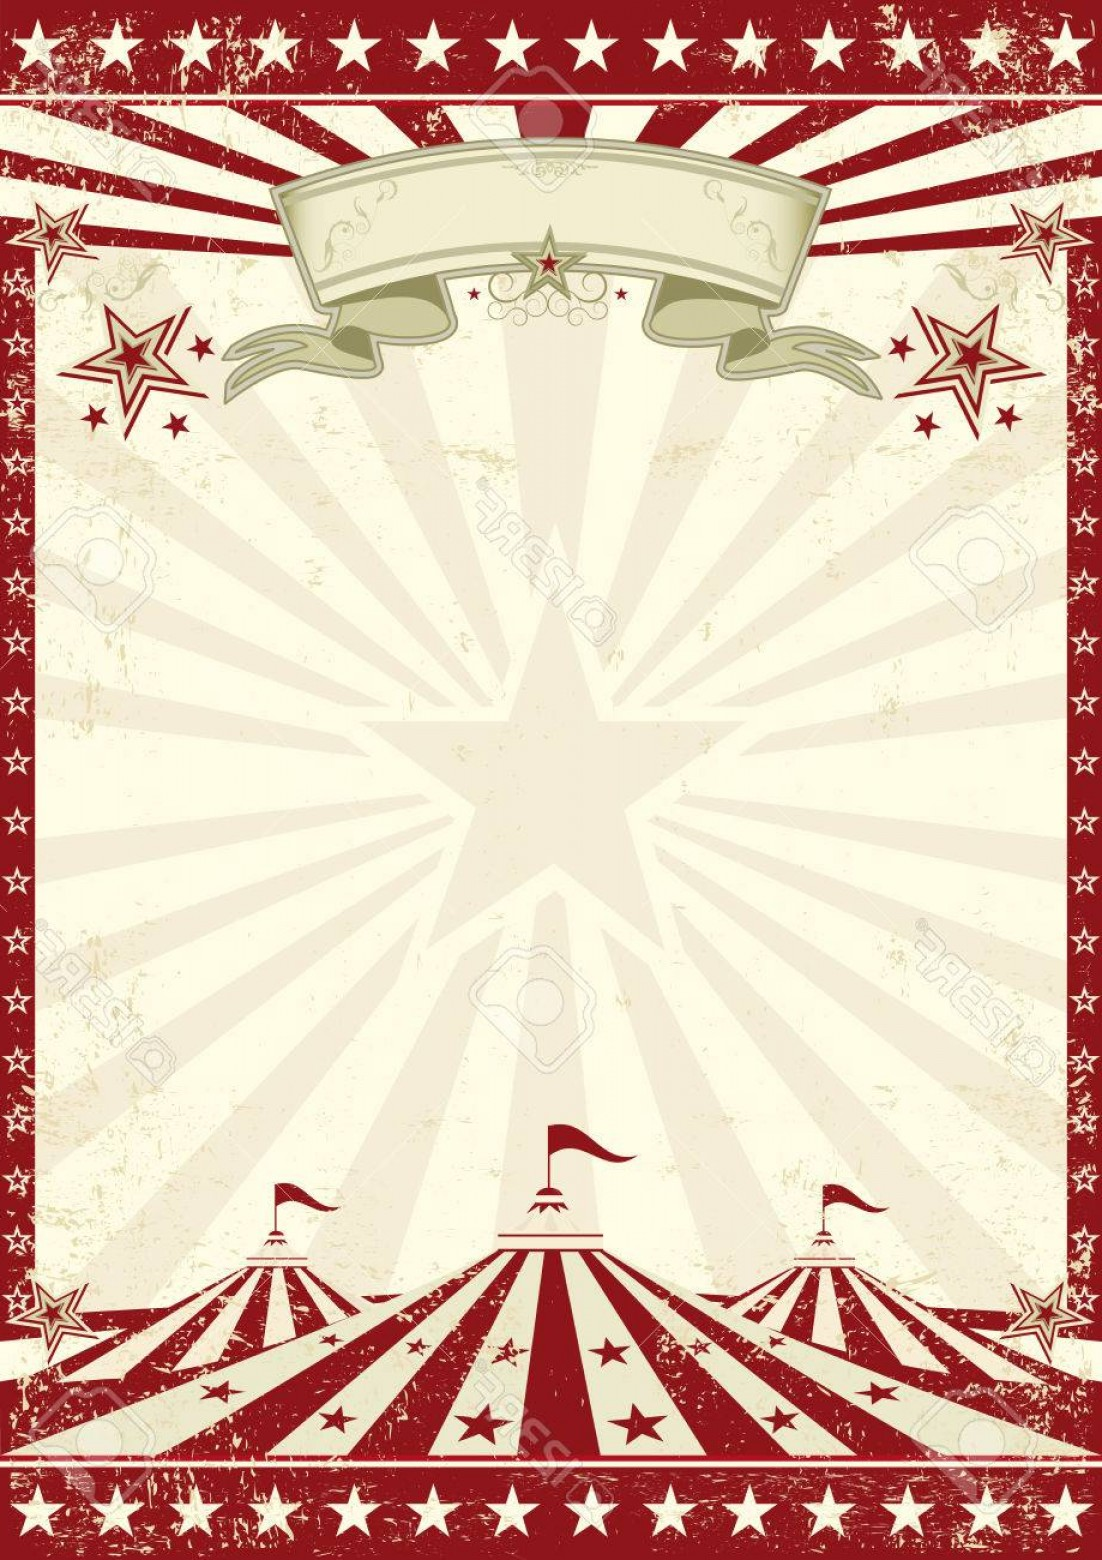 Circus Background Vector: Photostock Vector A Vintage Circus Background With Sunbeams For Your Entertainment